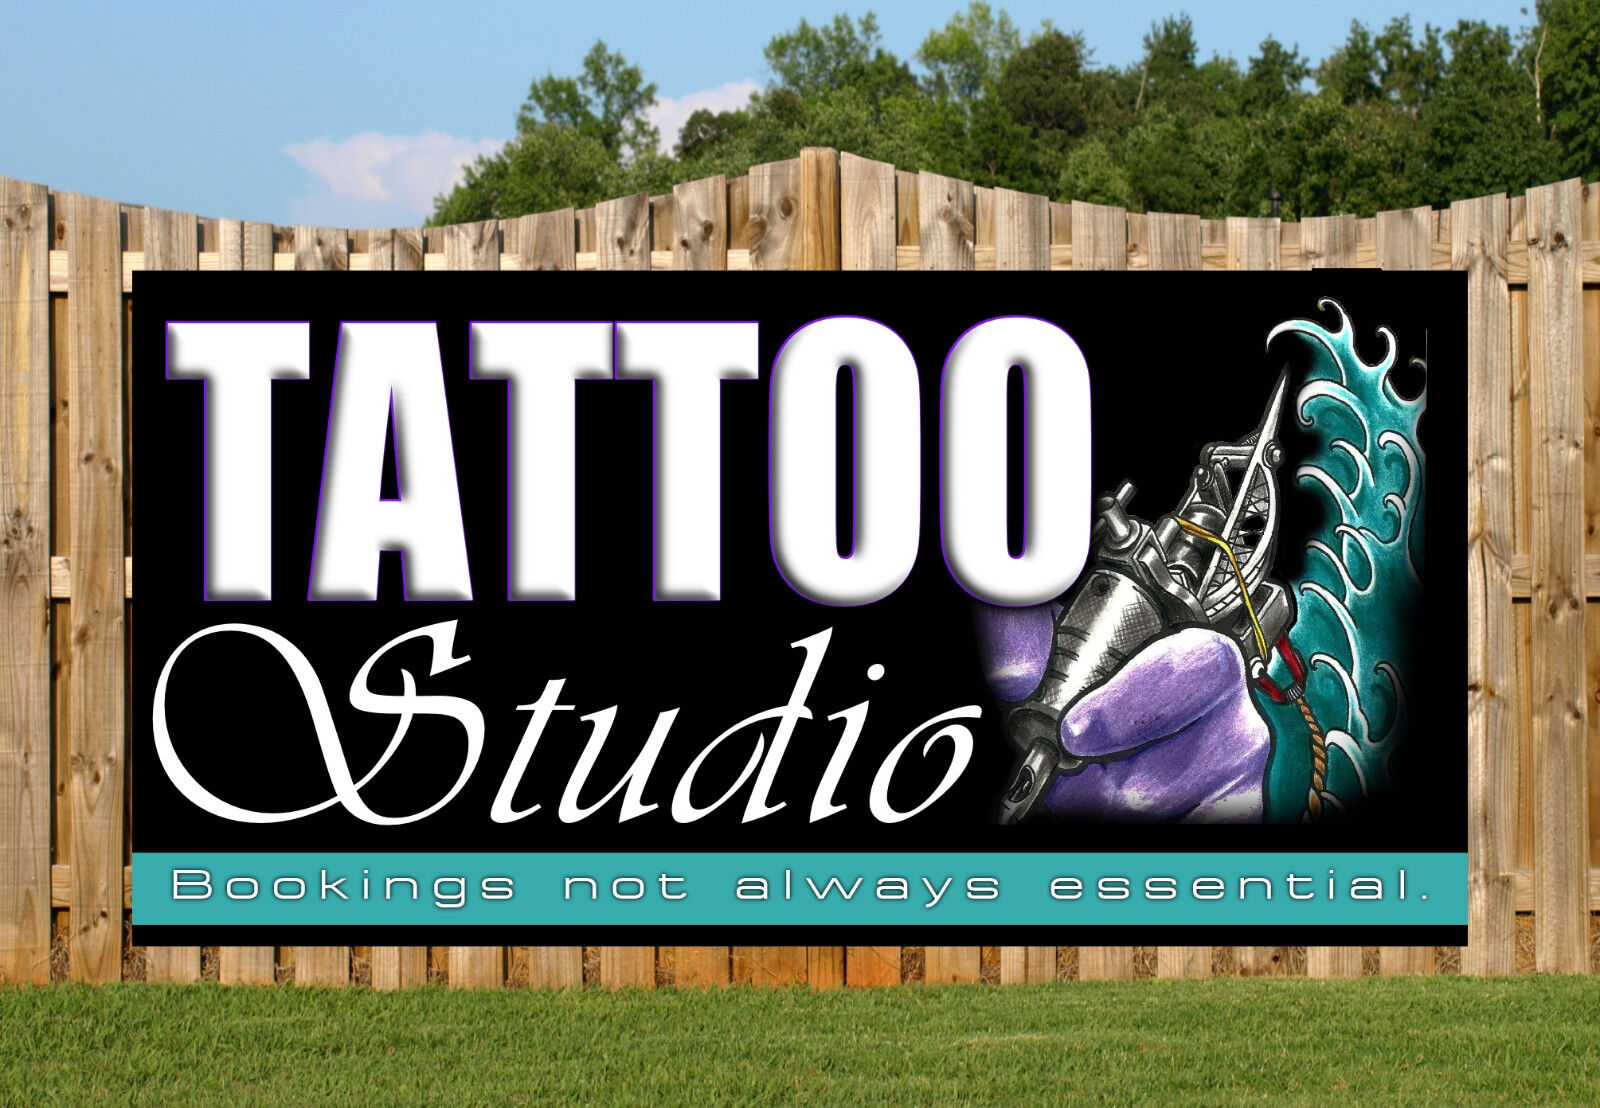 Tattoo shop studio ink gun pvc banners printed outdoor for Standard ink tattoo company